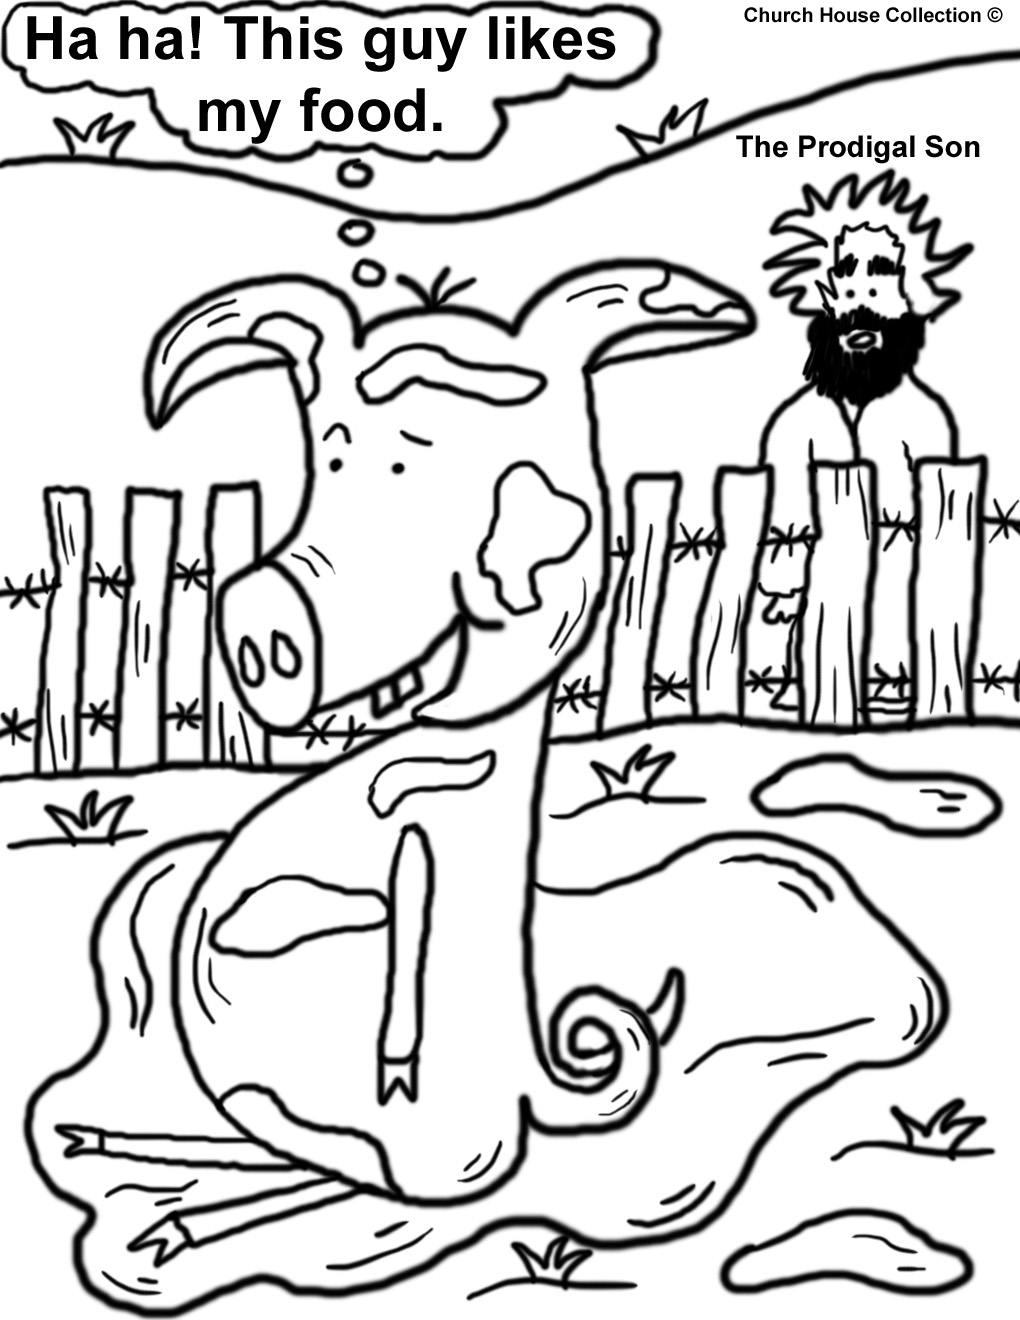 prodigal son coloring pages - the prodigal son coloring pages